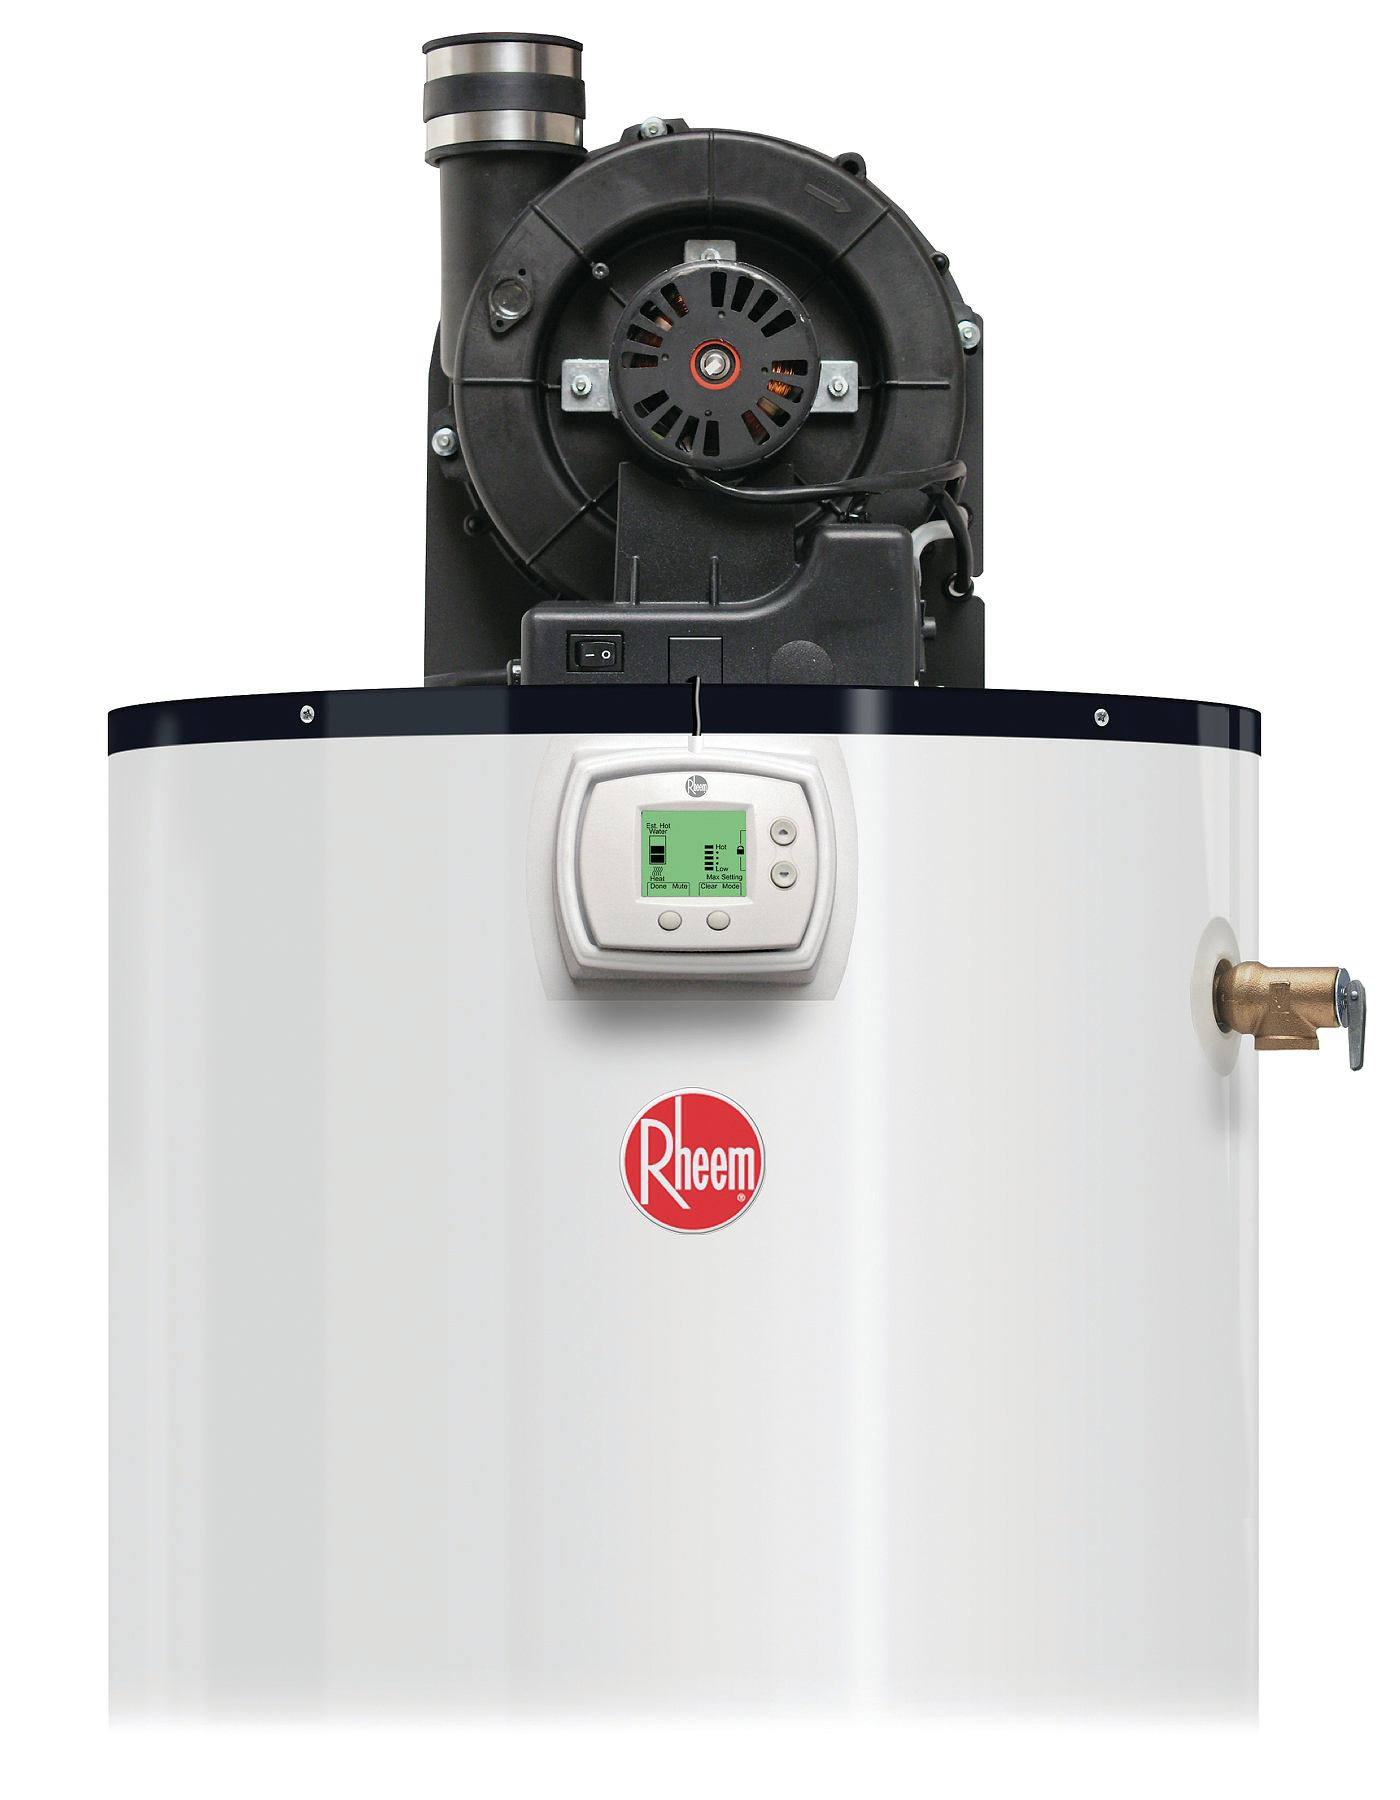 Rheem Hot Water Heaters >> Rheem Power-Vent Water Heater LCD Display | Builder Magazine | Products, Electrical, Water ...